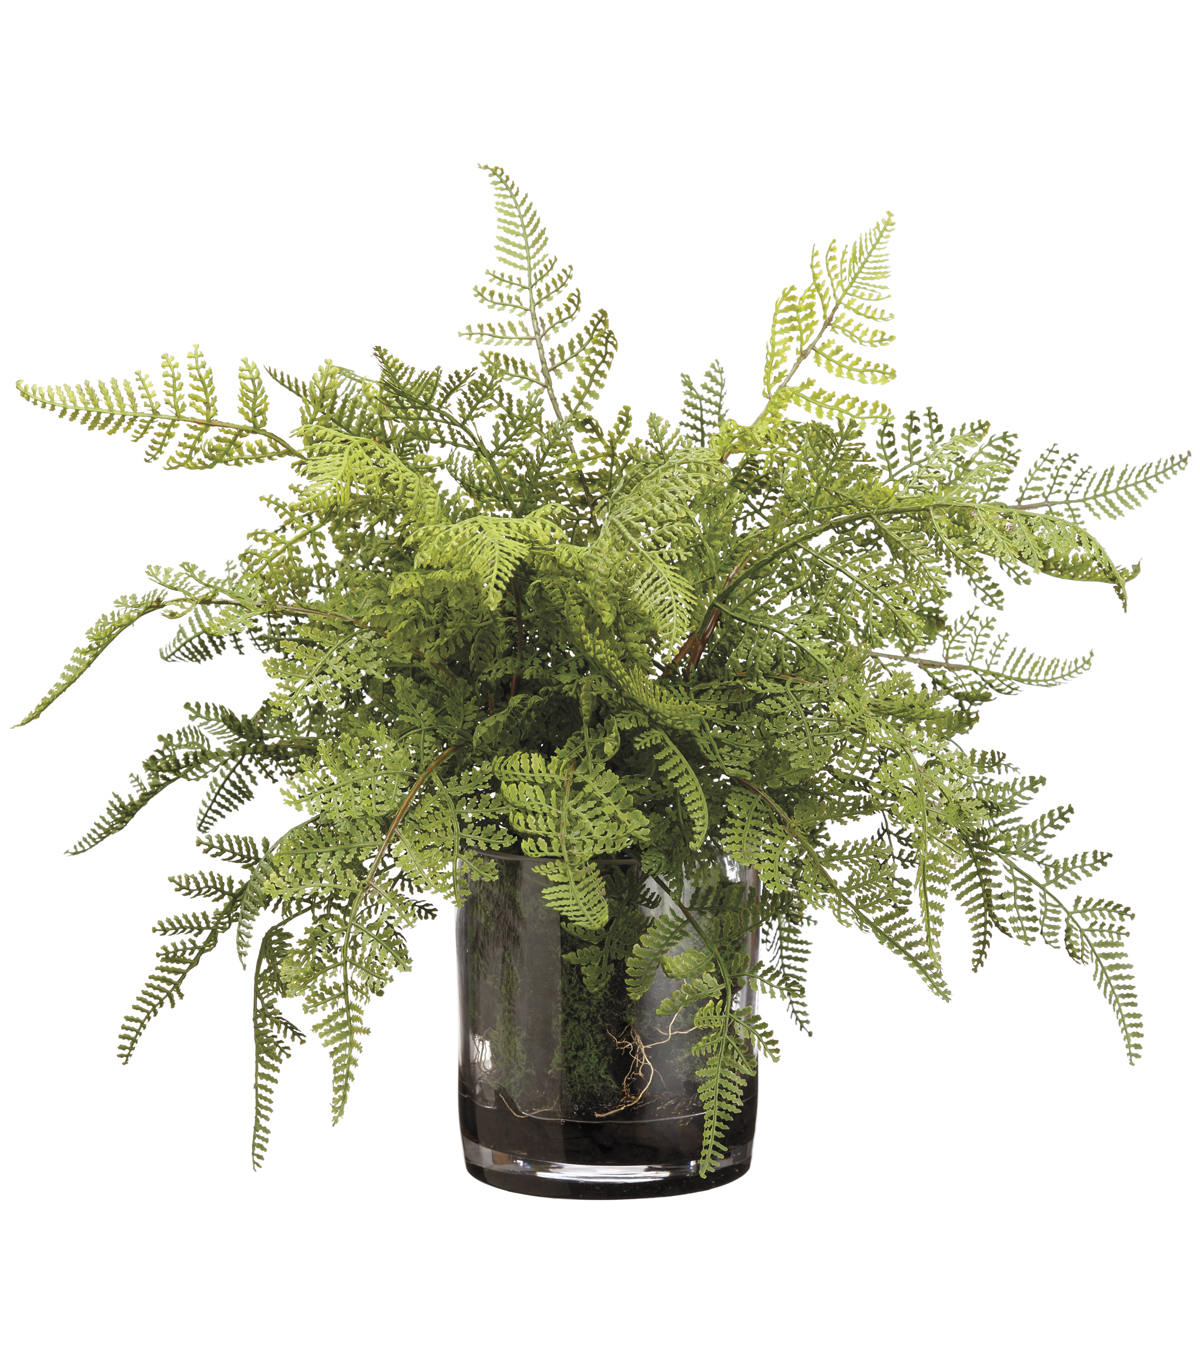 Lace Fern & Organic Soft Soil in Glass Vase 17\u0027\u0027-Green